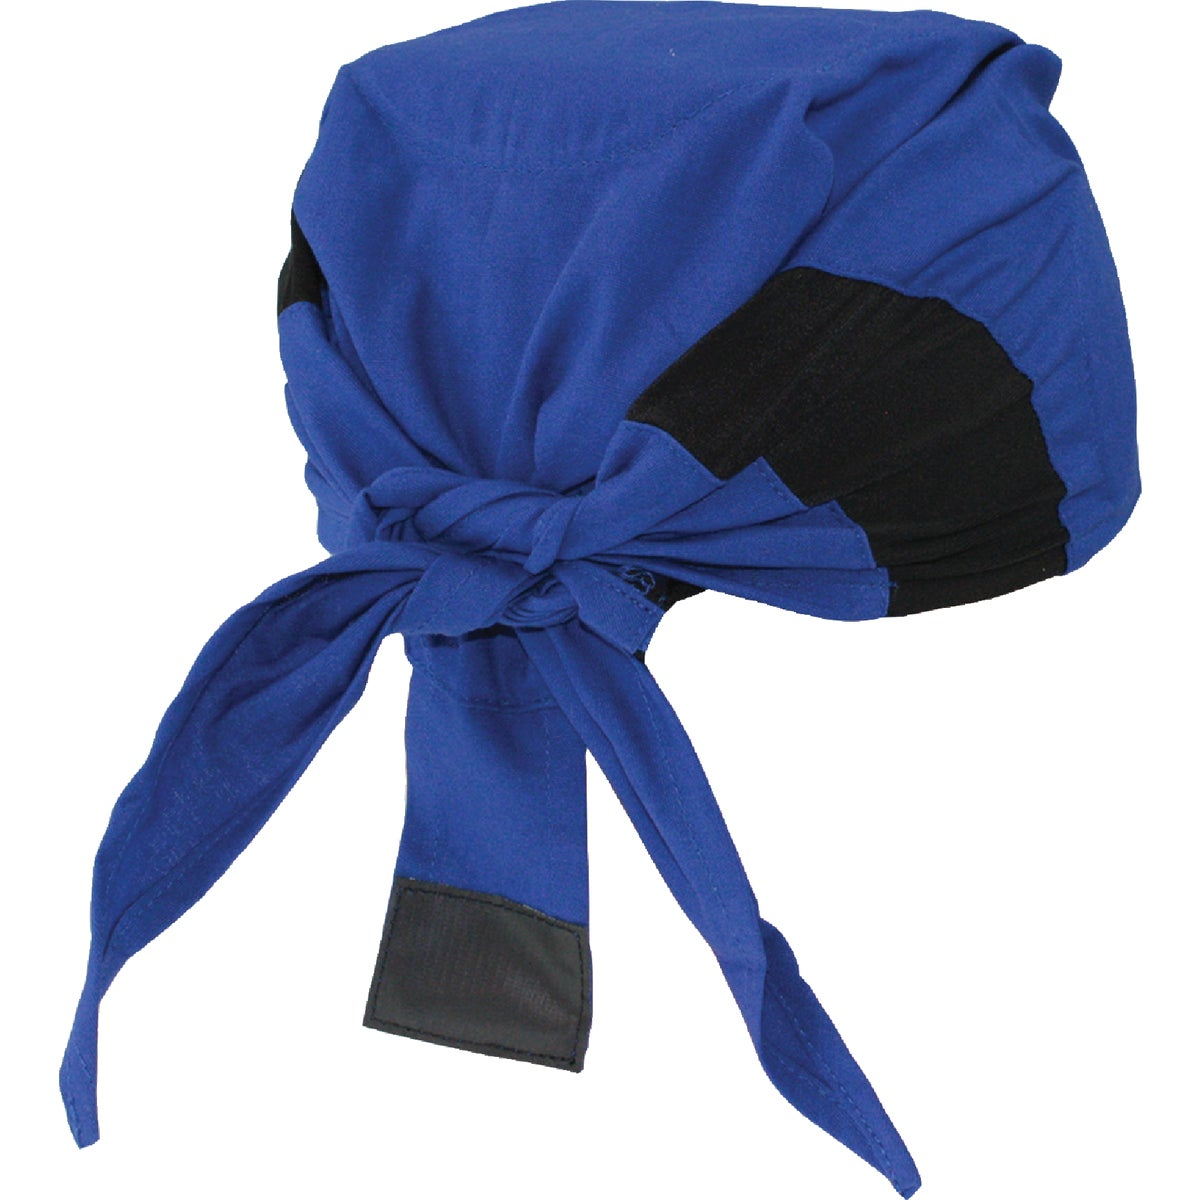 BLUE COOL TRIANGLE HAT - 12587 by Ergodyne Incom